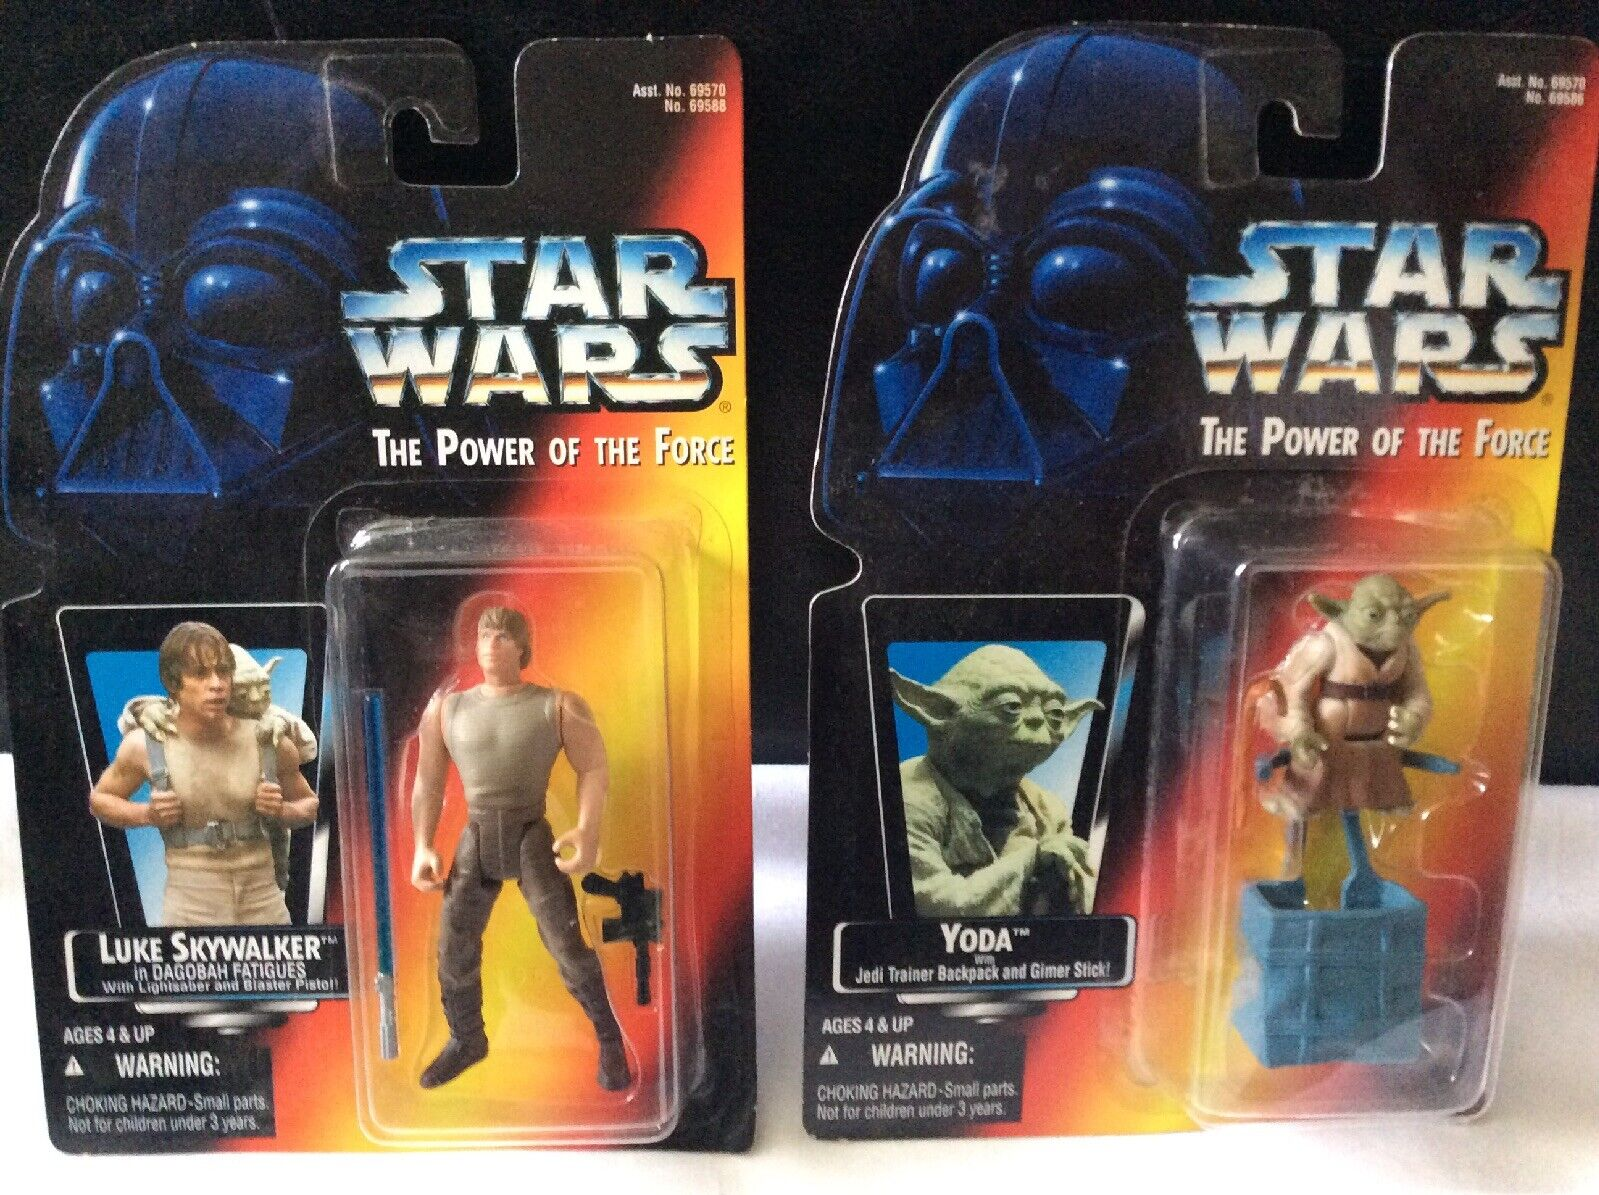 2 1995 Stern Wars Power Of The Force Figures Yoda And Luke In Jedi Training